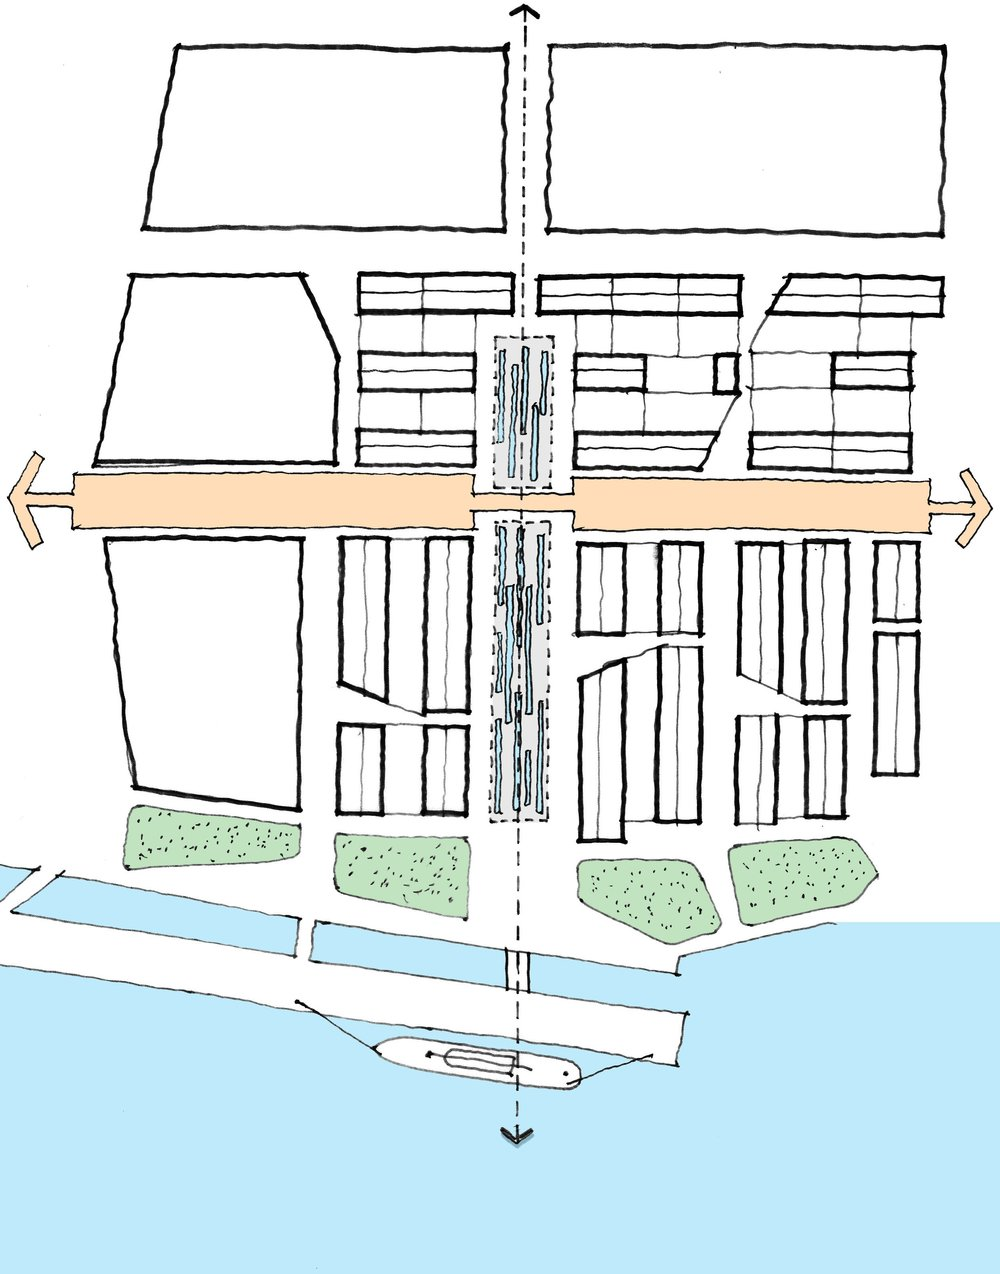 The diagram above illustrates the urban structure design principles for the Northfleet Riverside